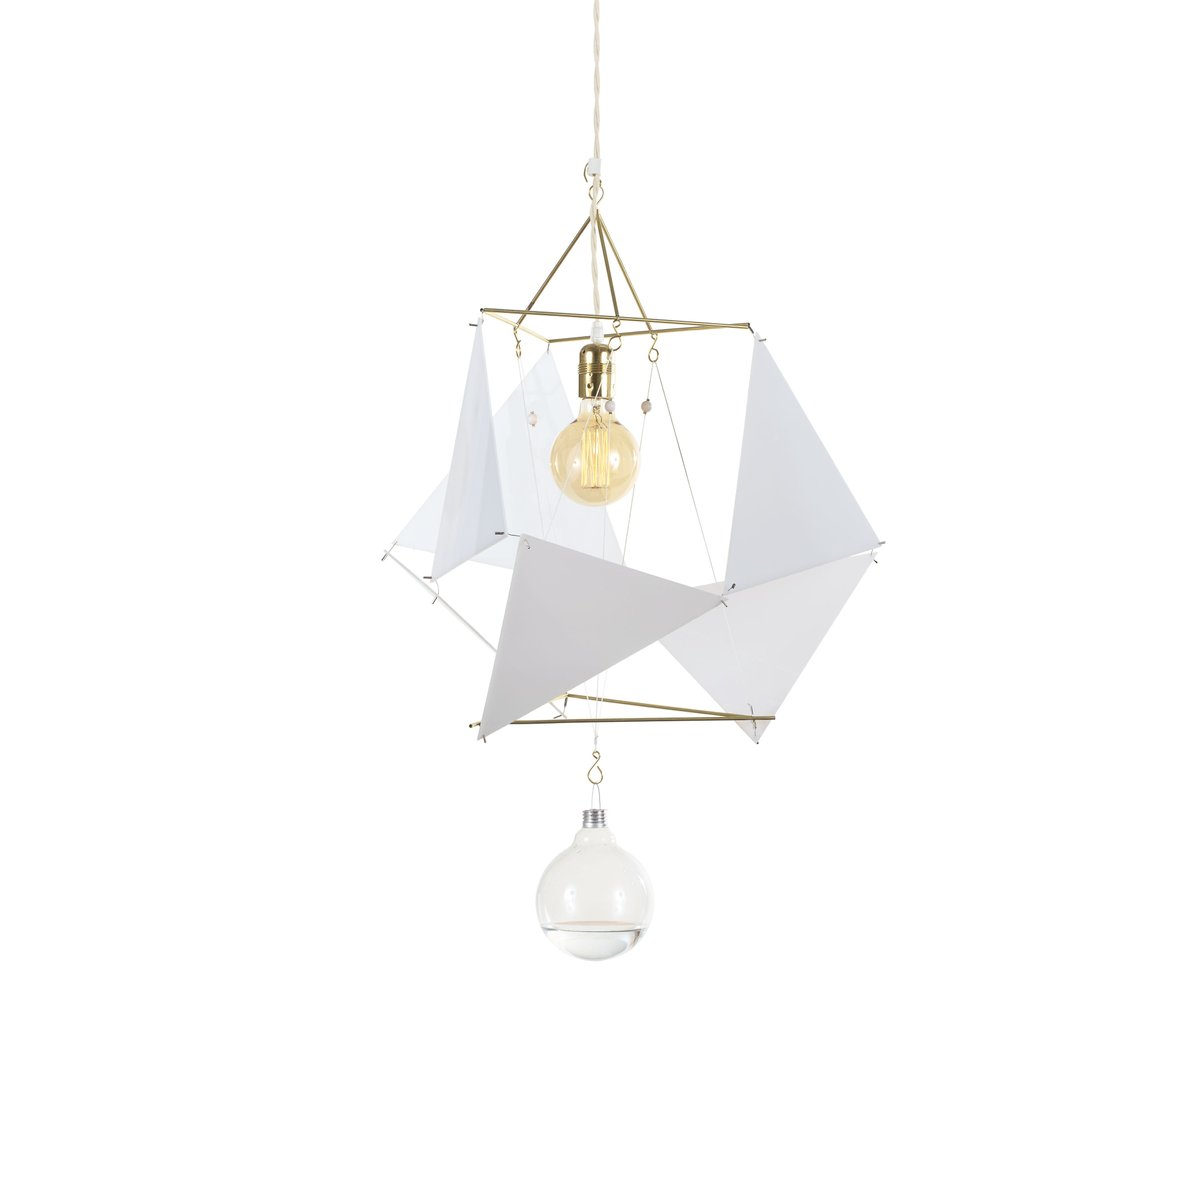 Vector Equilibrium PMMA Modular Lamp System by Nicolas Brevers for ...